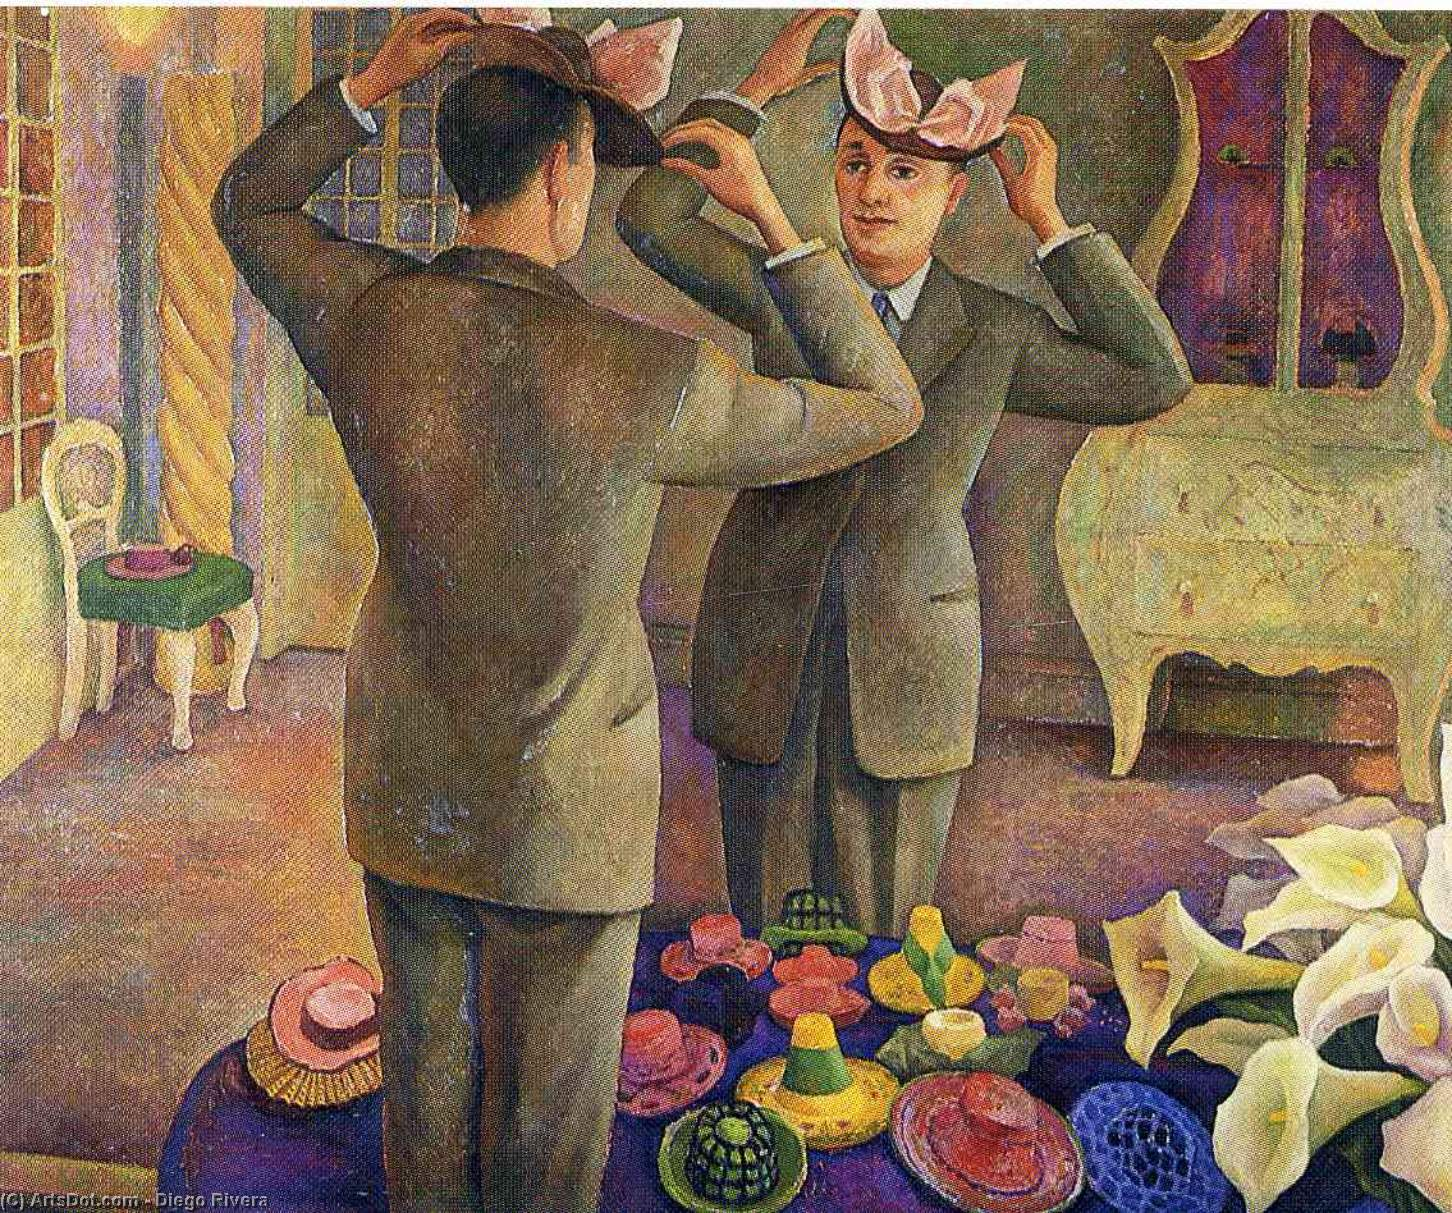 untitled (2721) by Diego Rivera (1886-1957, Mexico)